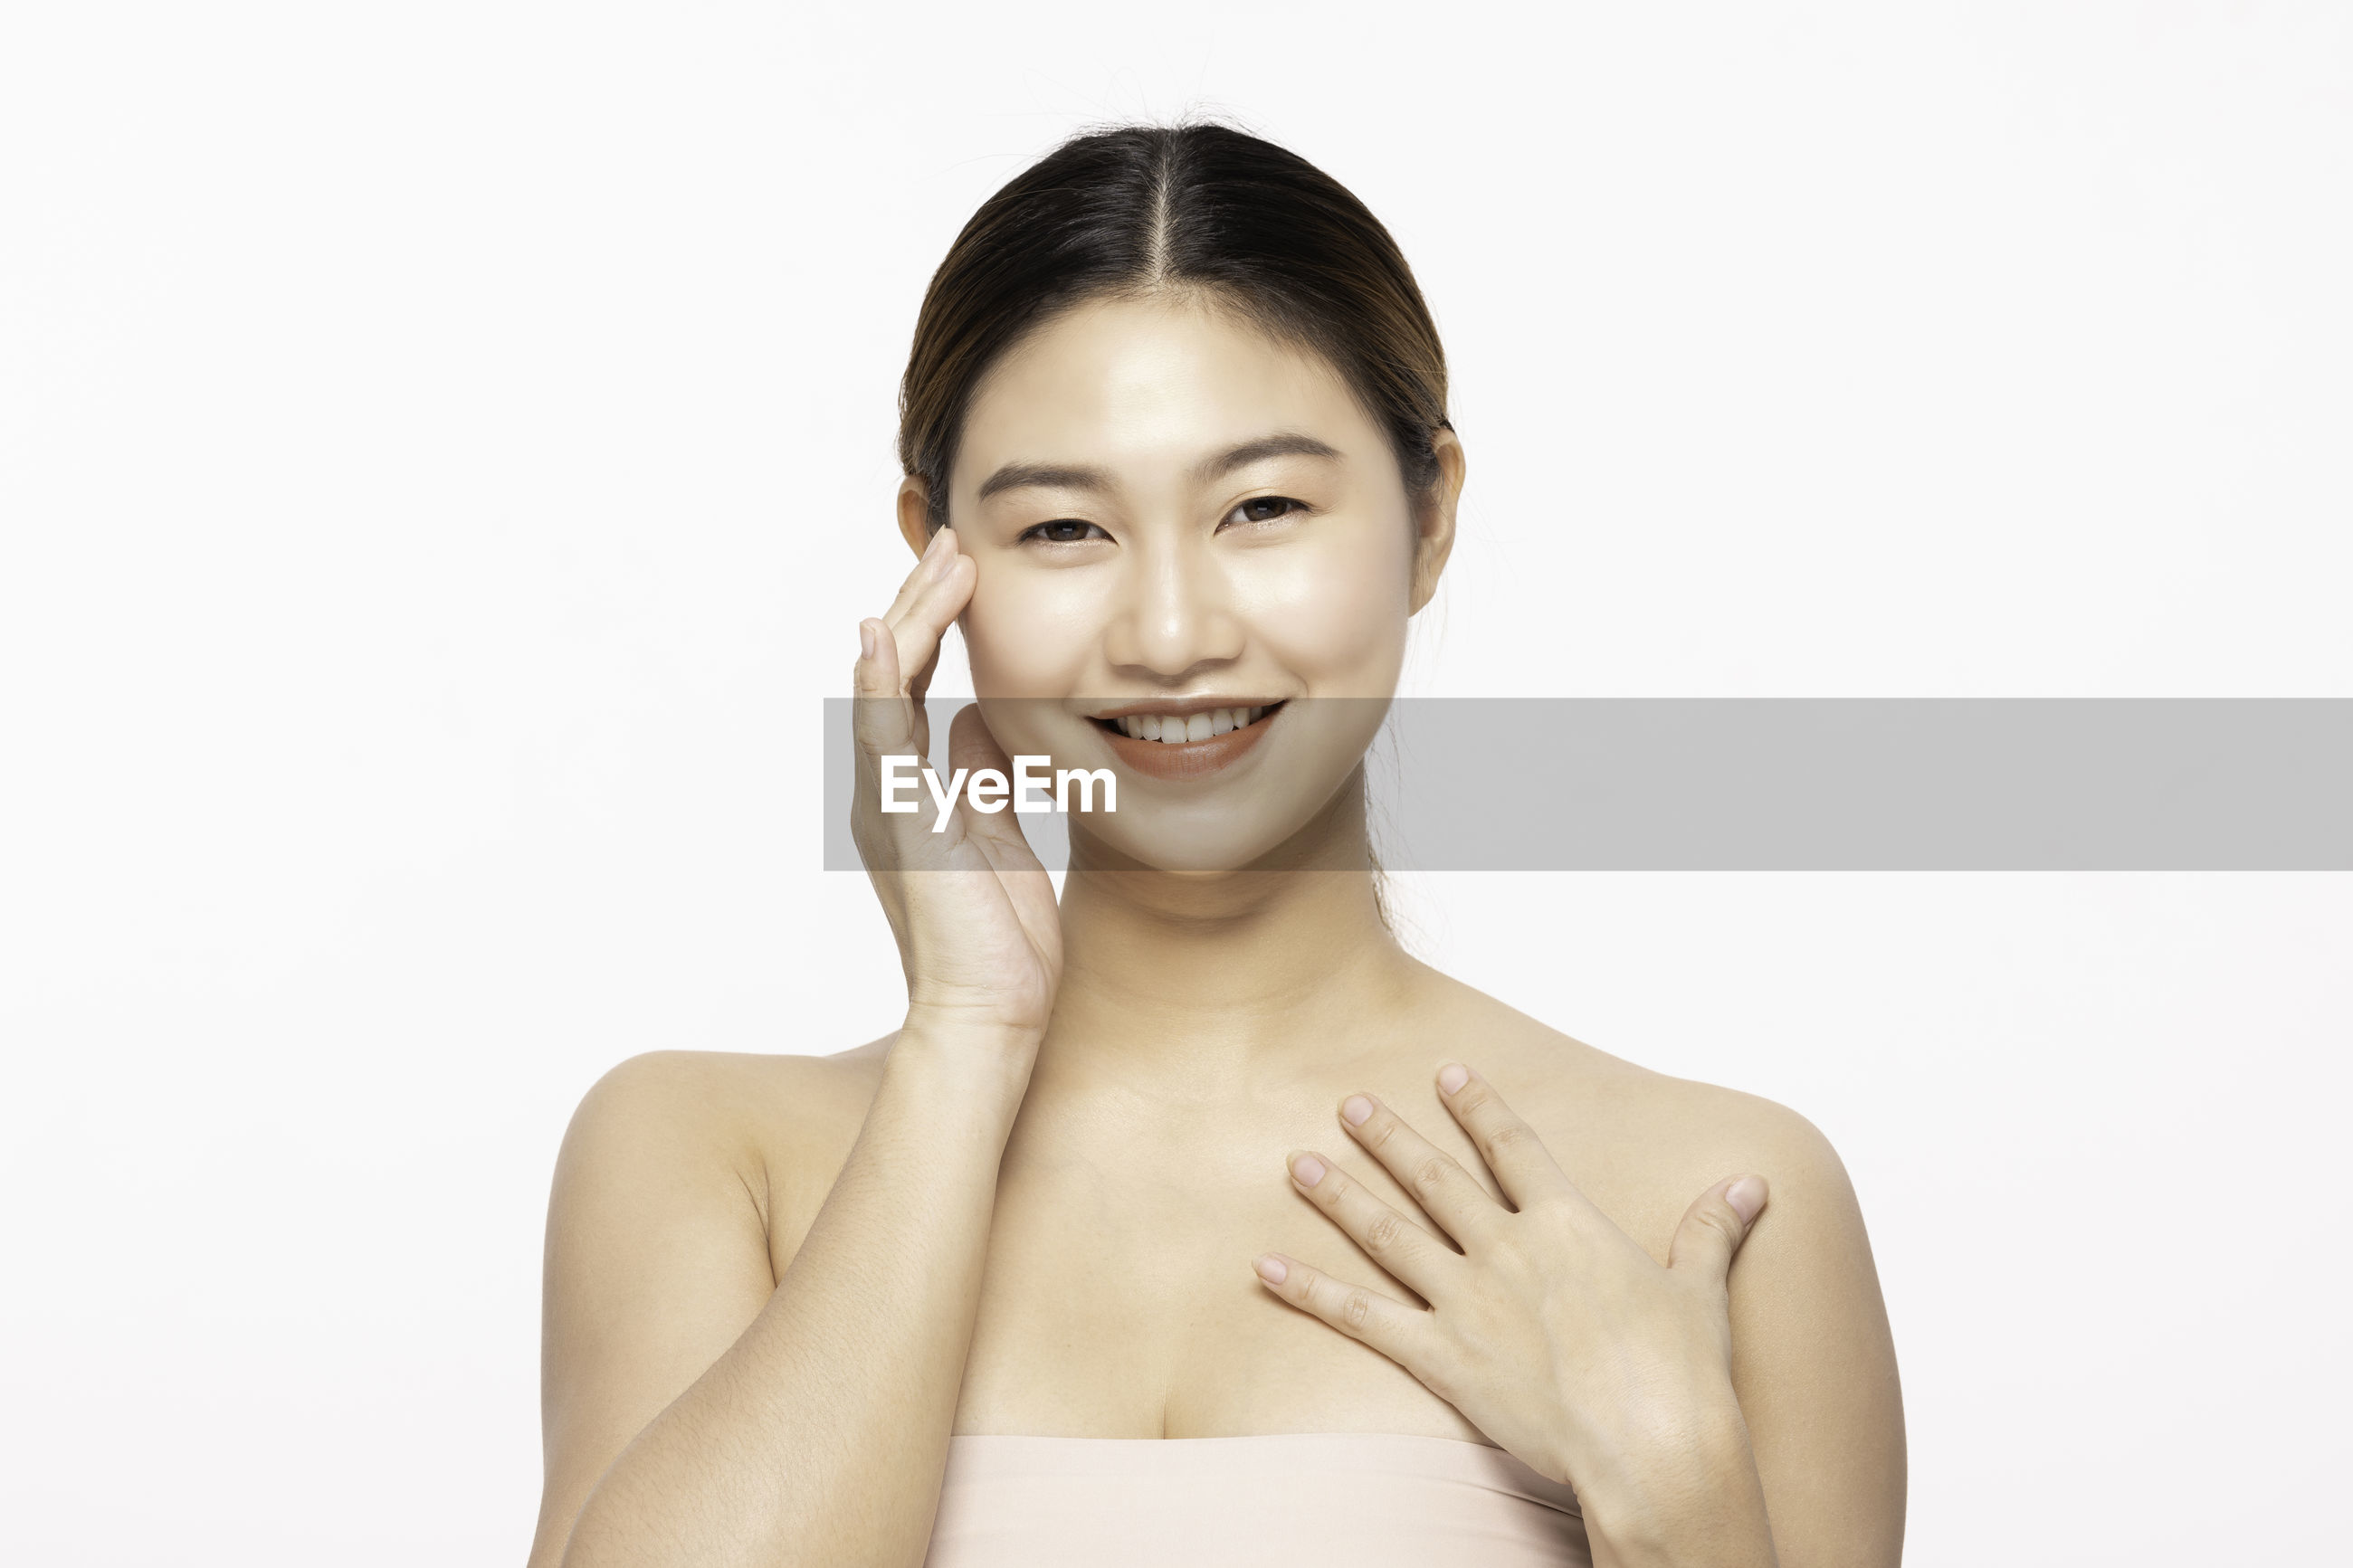 Portrait of smiling woman over white background